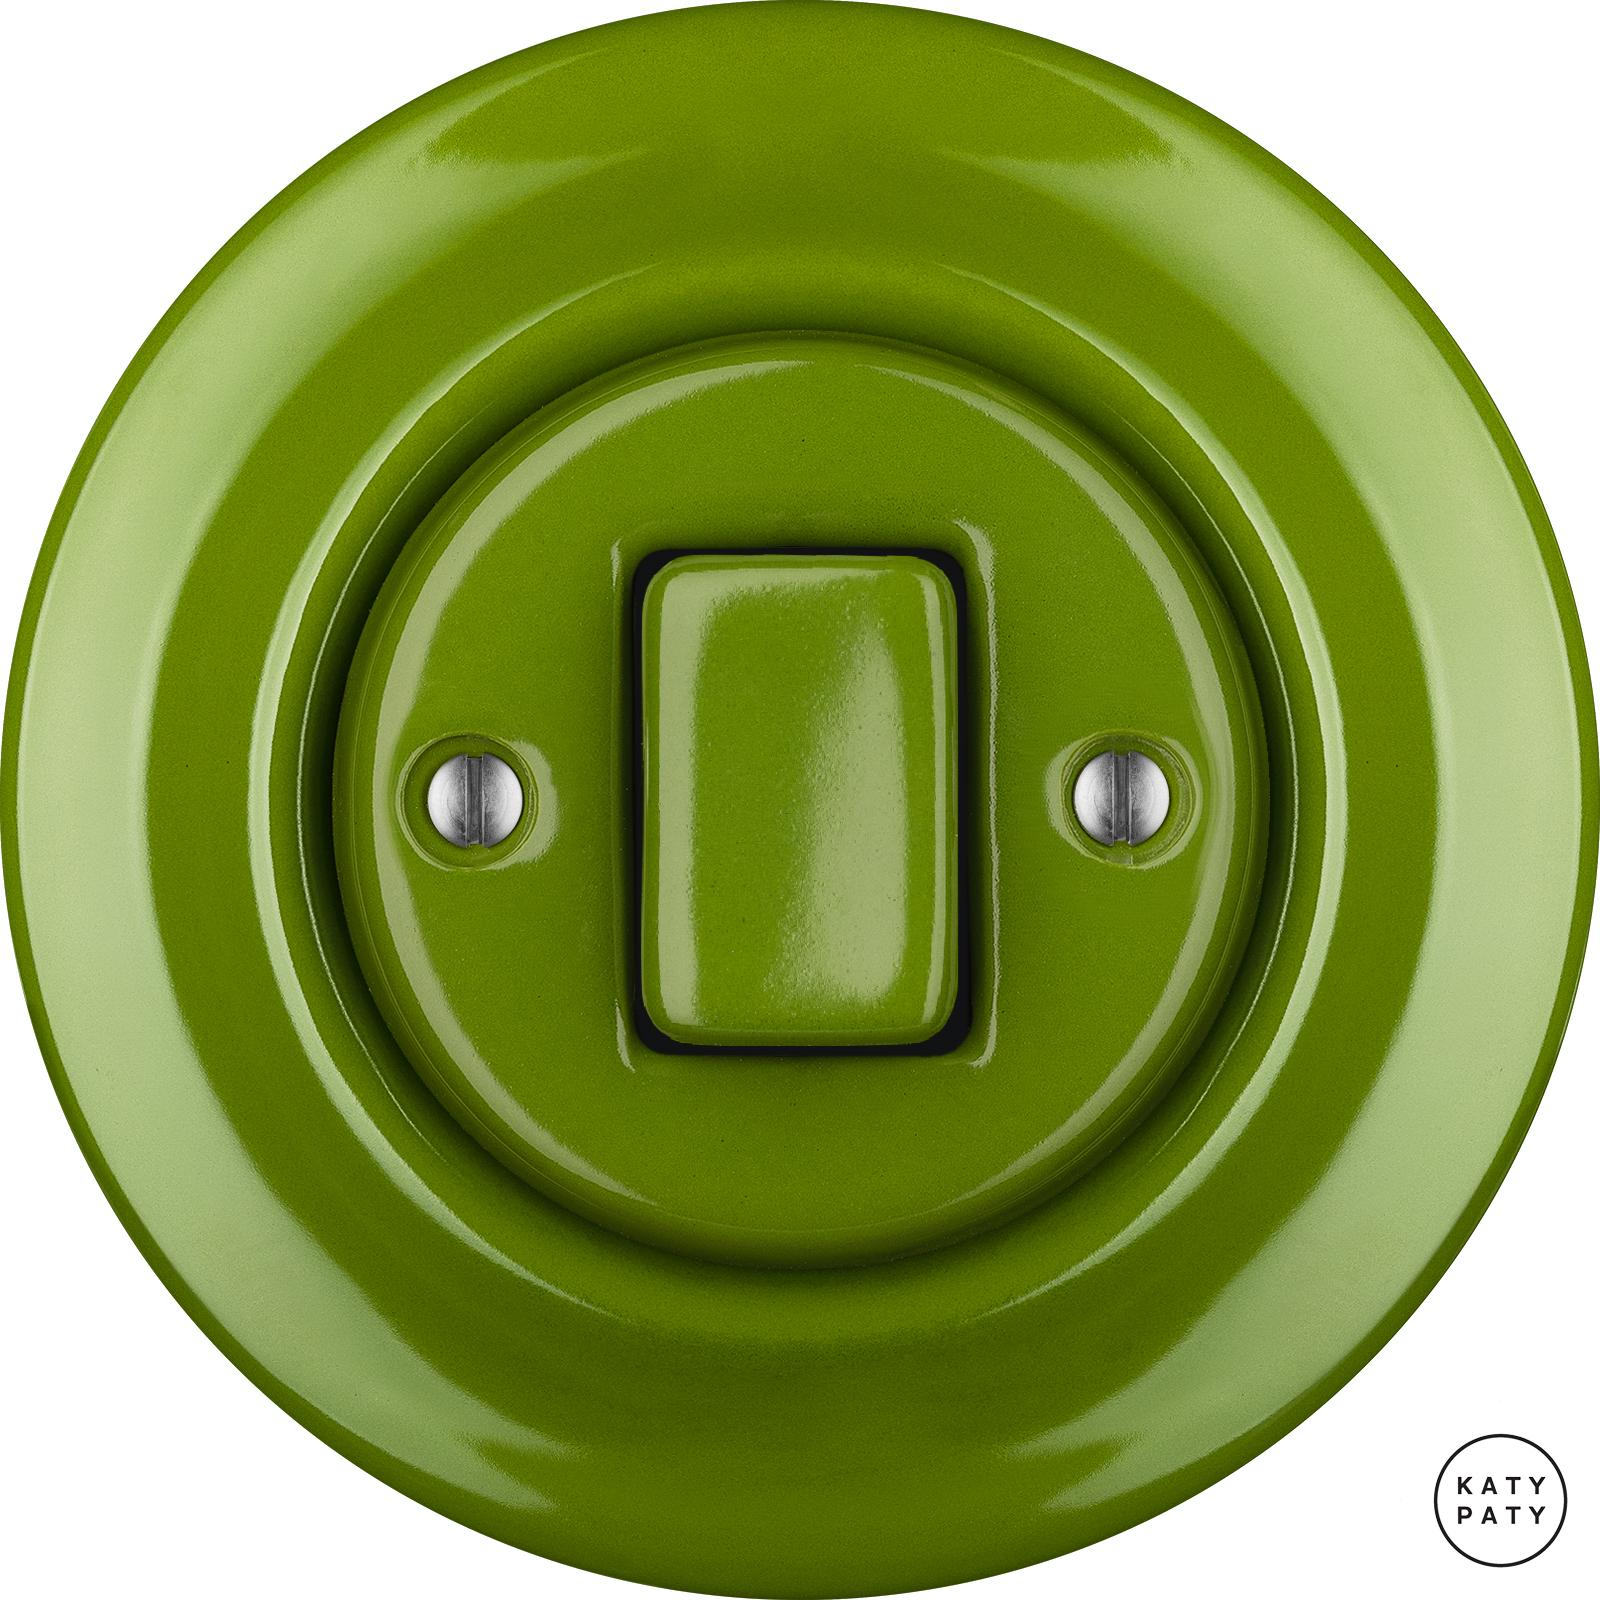 Porcelain switches - a 1 key - FAT ()  - NITOR CHLORA | Katy Paty